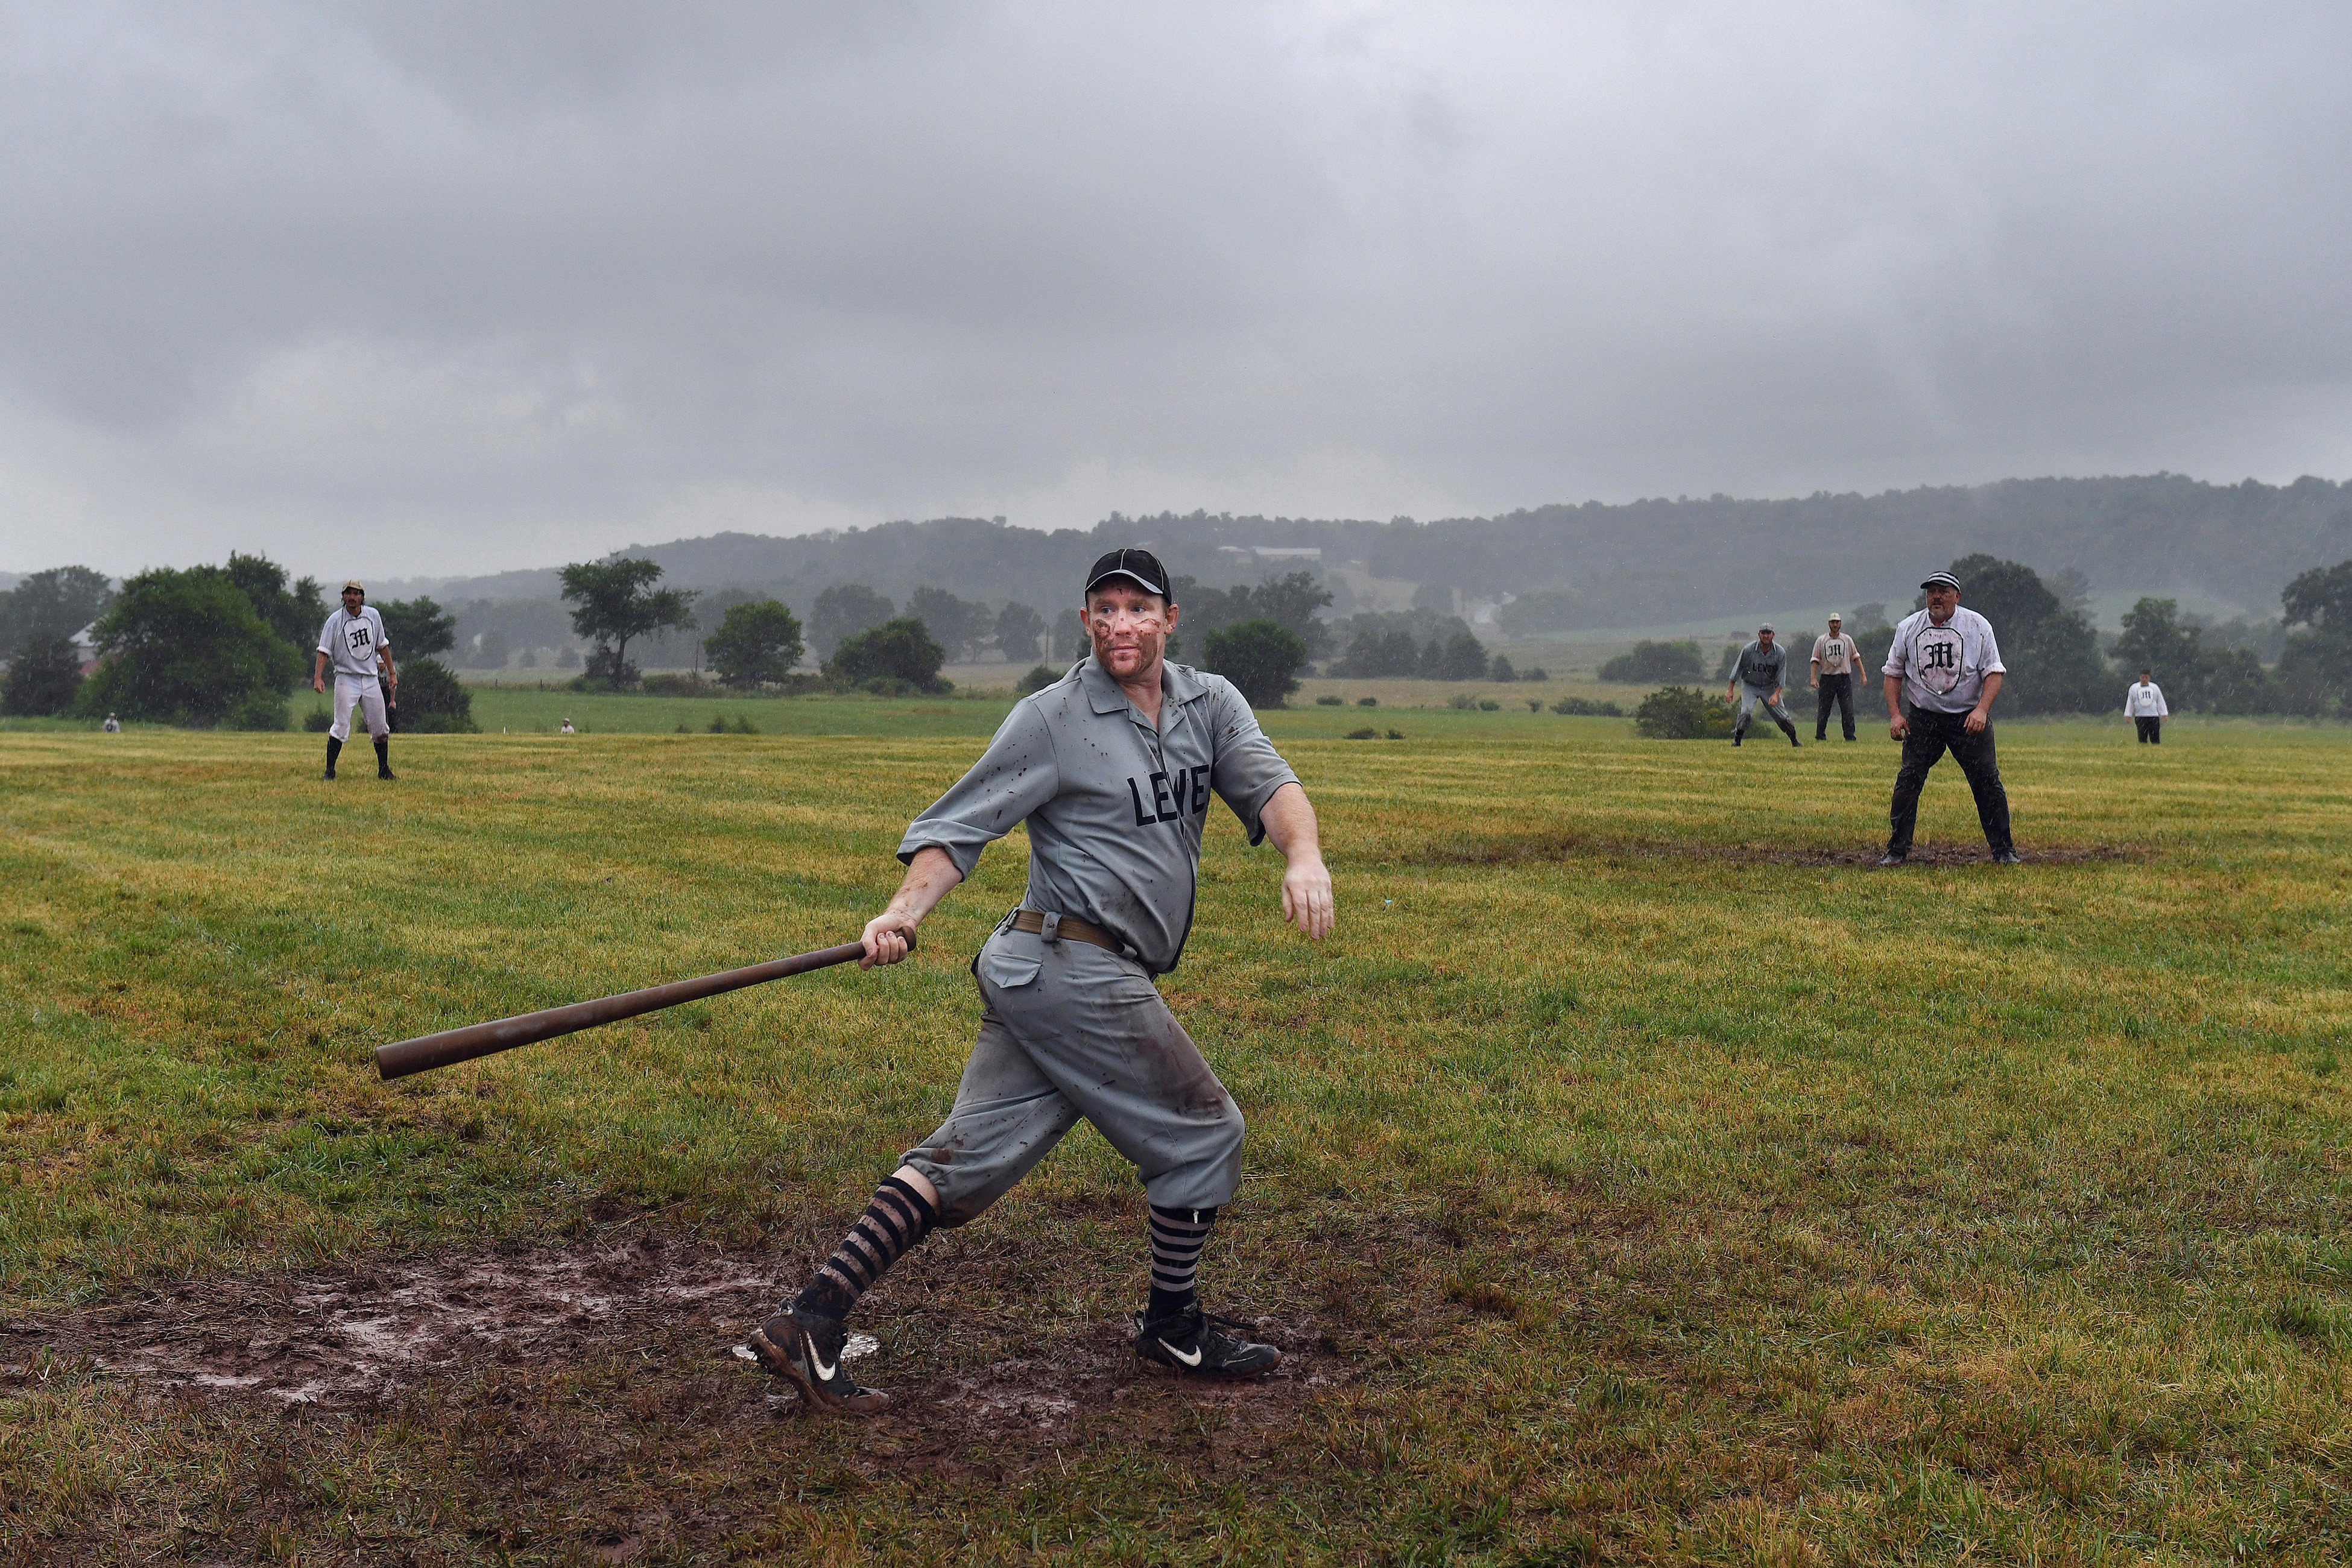 Steve Scharff, 36, of the Lewes Base Ball Club takes part in the National 19th Century Base Ball Festival on Saturday in Gettysburg, Pa. The game is played by 1863 rules: players wear vintage uniforms and catch the ball with their bare hands. The tournament was supposed to continue Sunday but was rained out. MUST CREDIT: Washington Post photo by Matt McClain